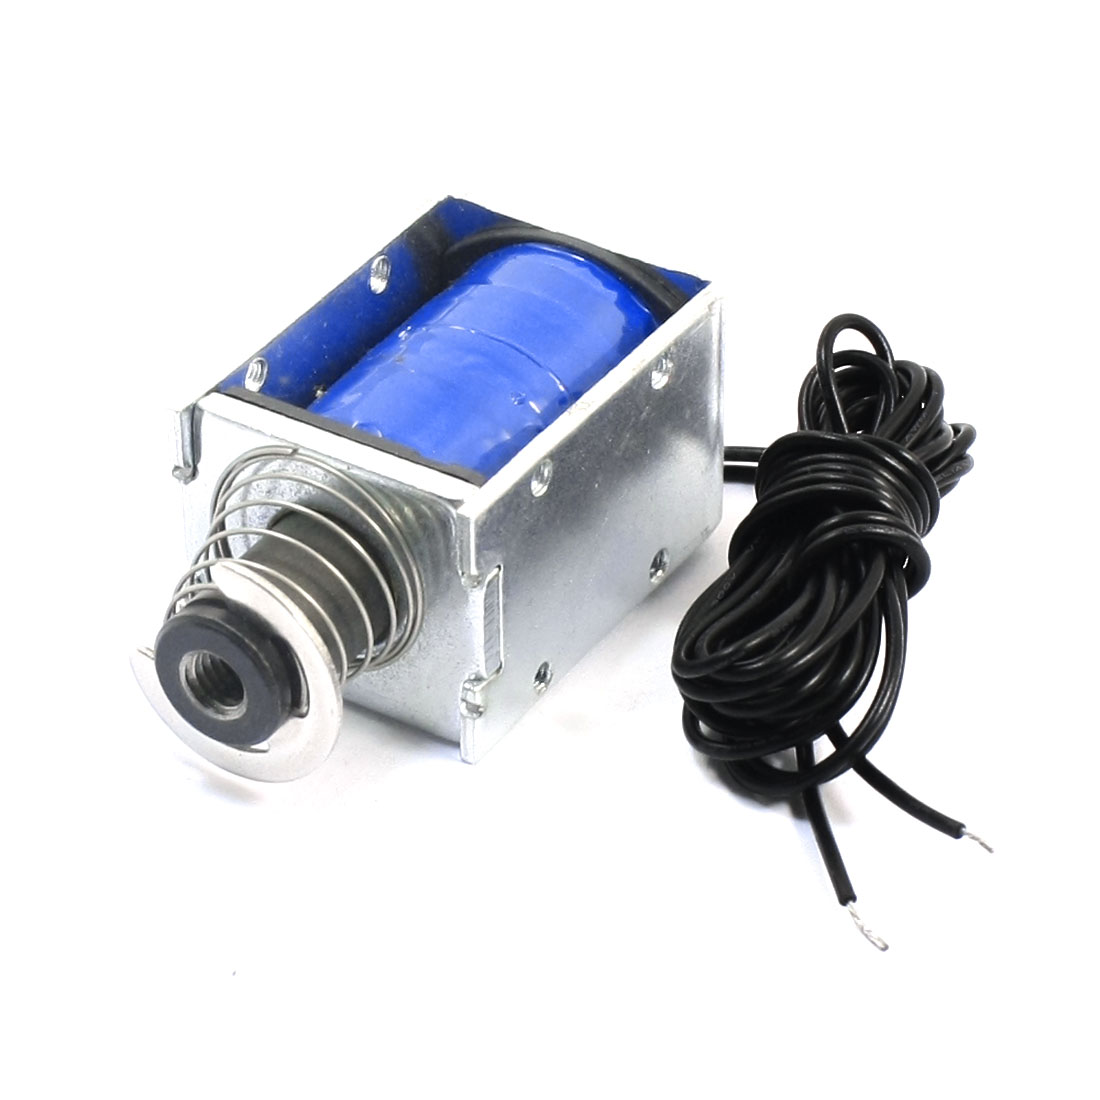 8mm Stroke 900g Force 2-Wire Connecting Open Frame Pull Type Spring Loaded Linear Motion Solenoid Electromagnet DC 24V 0.96A 23.04W